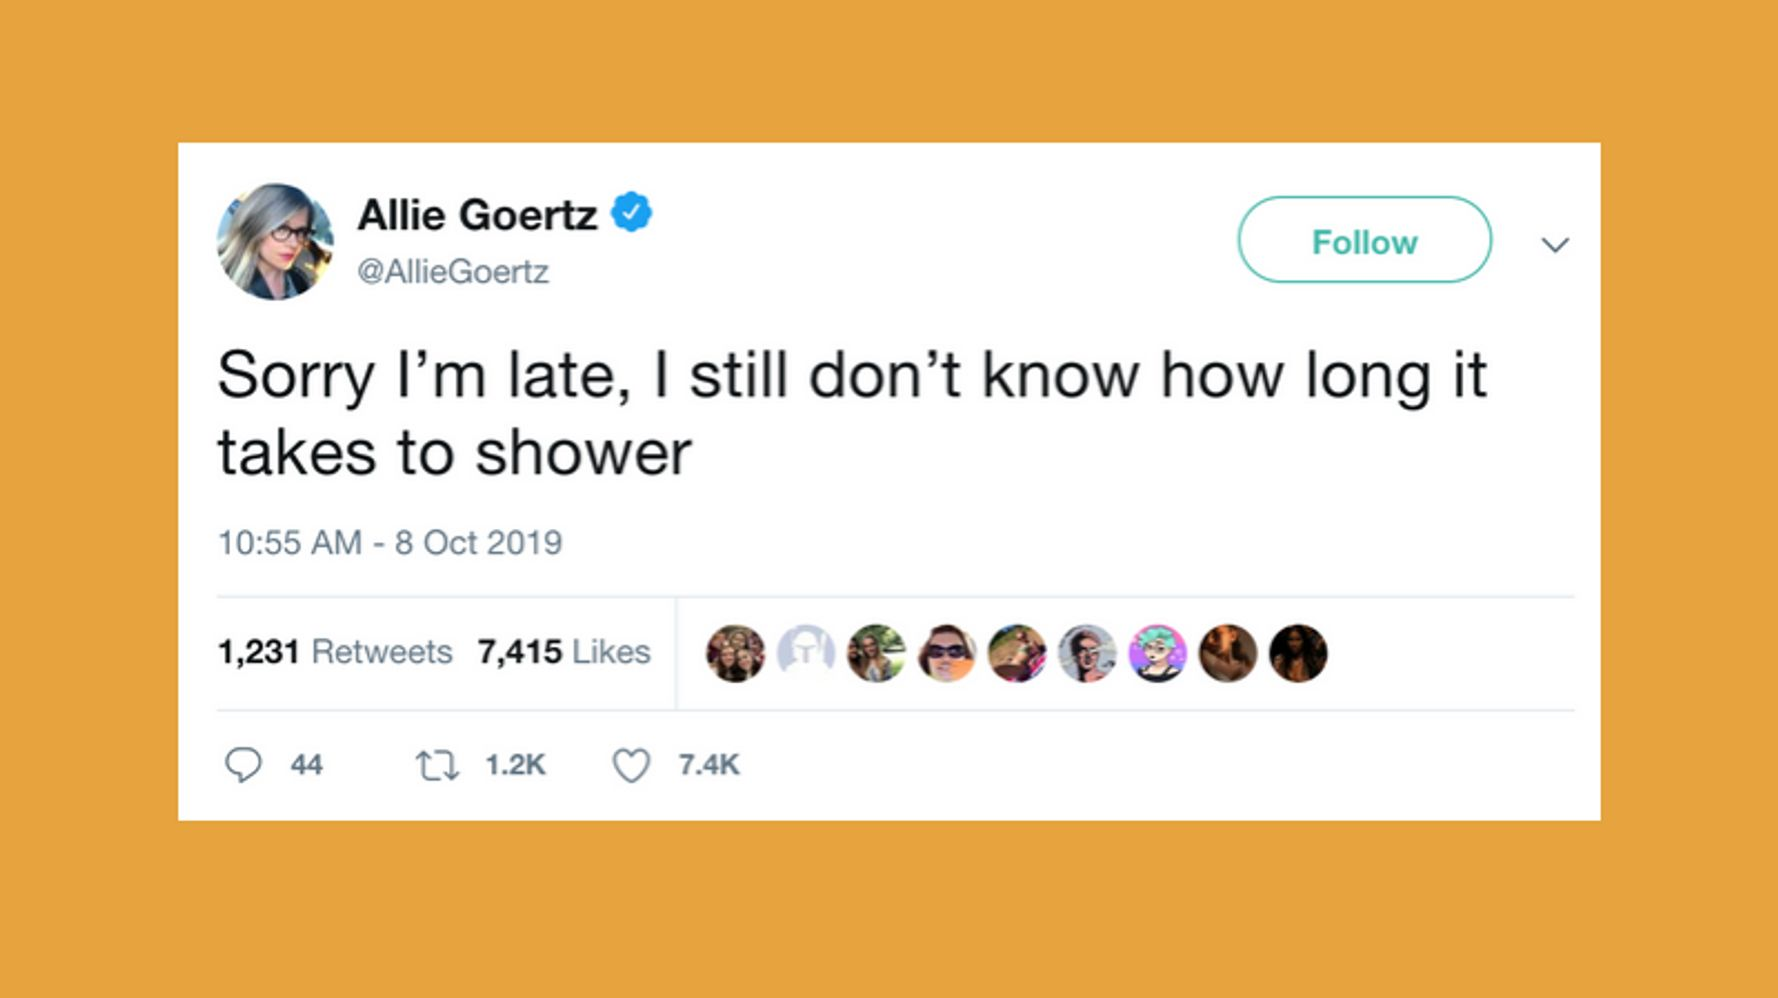 The 20 Funniest Tweets From Women This Week (Oct. 5-11)